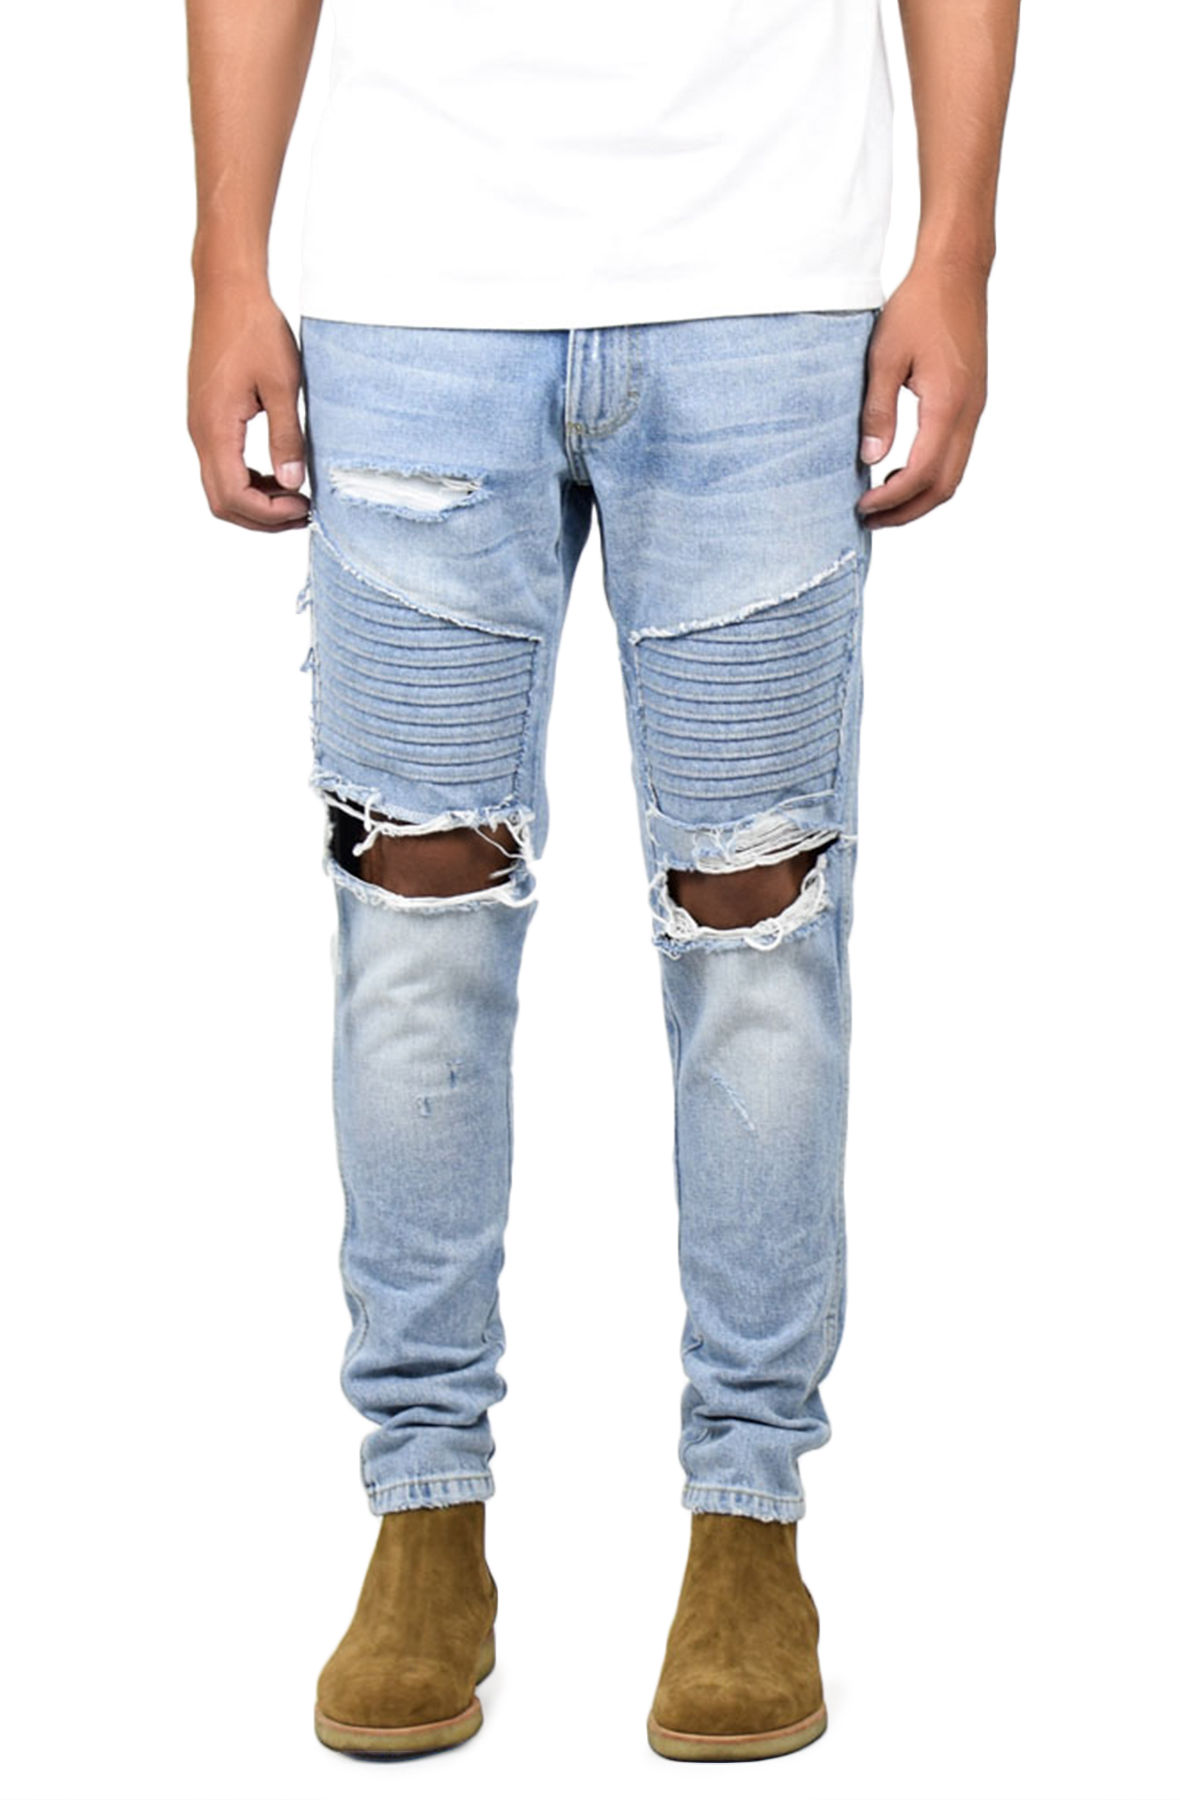 Image of The Vintage Denim Jeans Ripped Patched Biker Jeans in Vintage Indigo